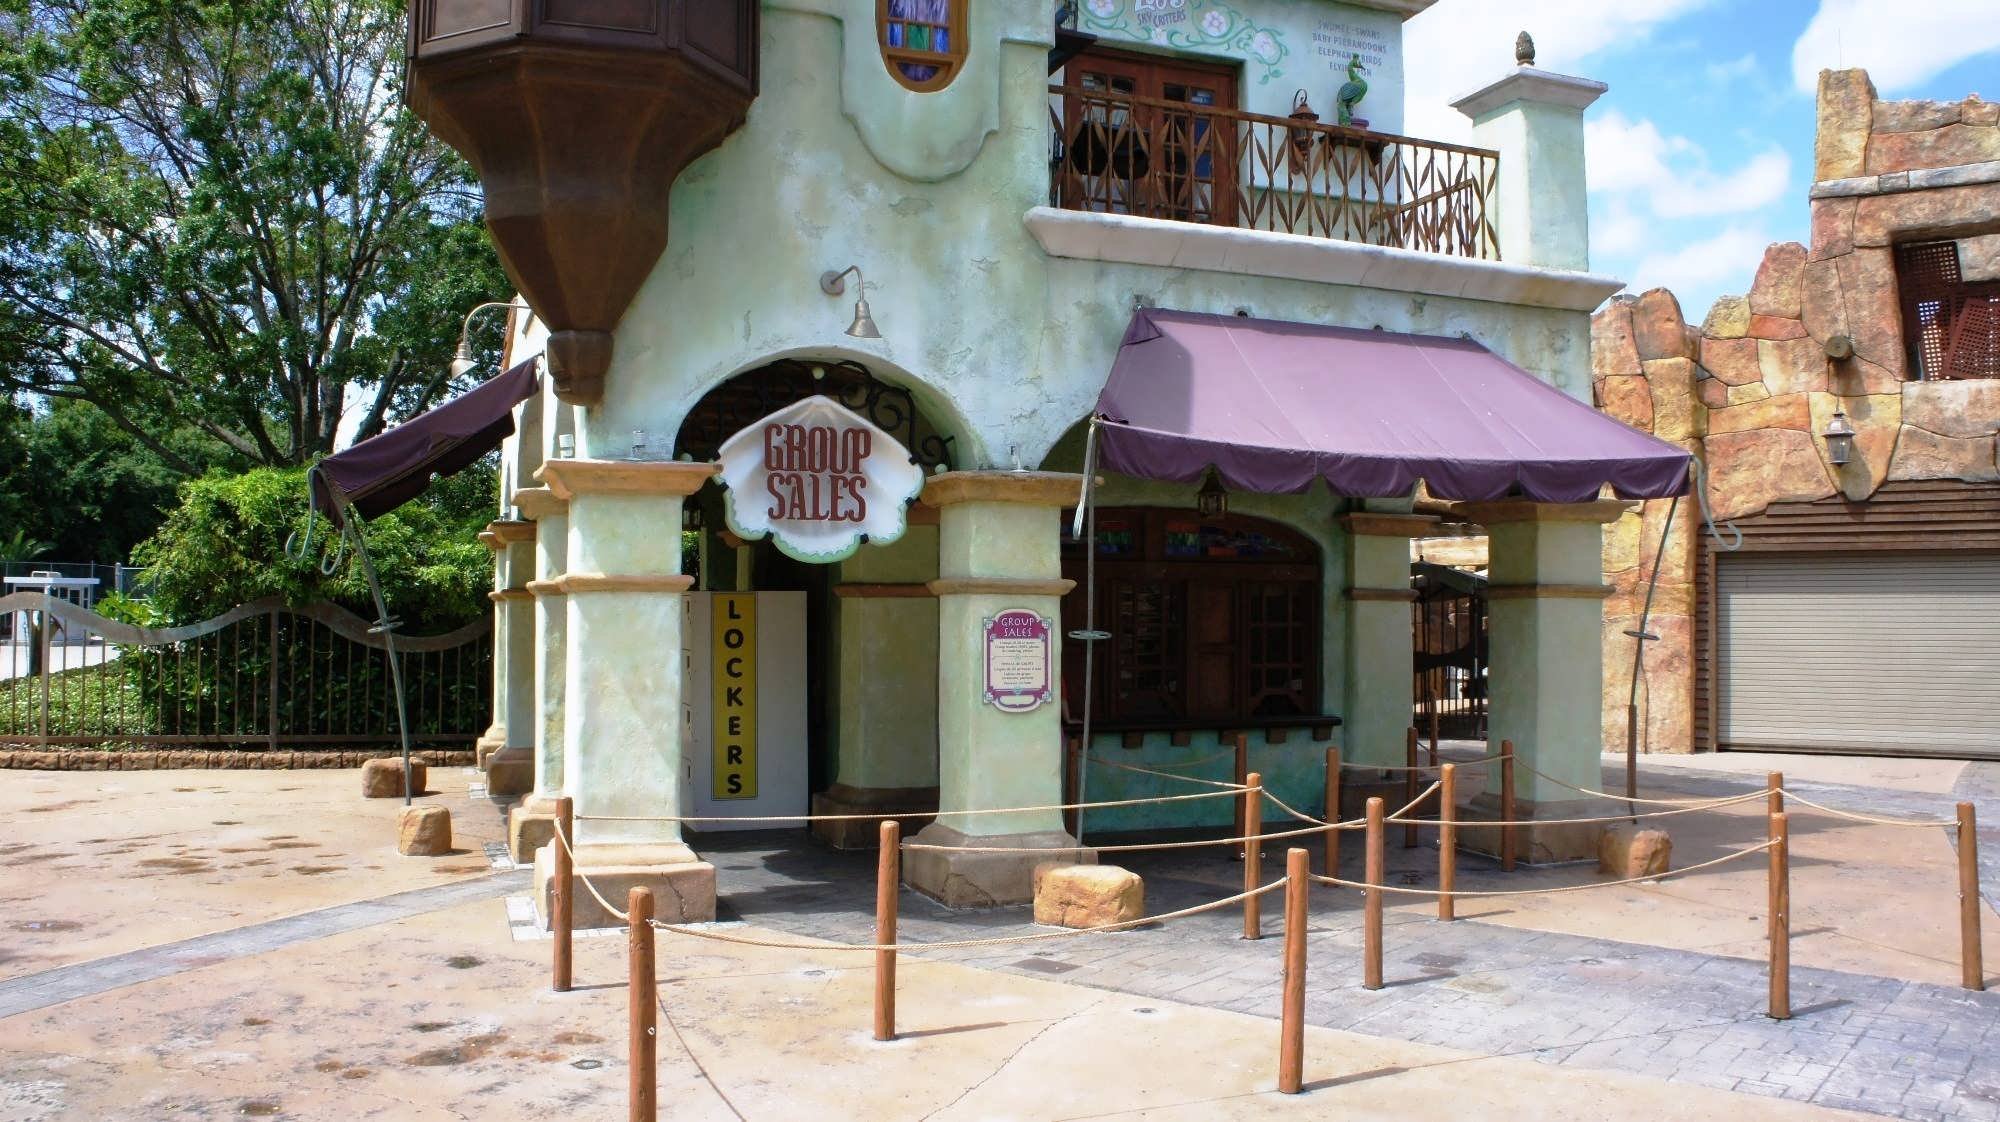 IOA lockers – Set 6. Outside the park, to the far left of the entrance.